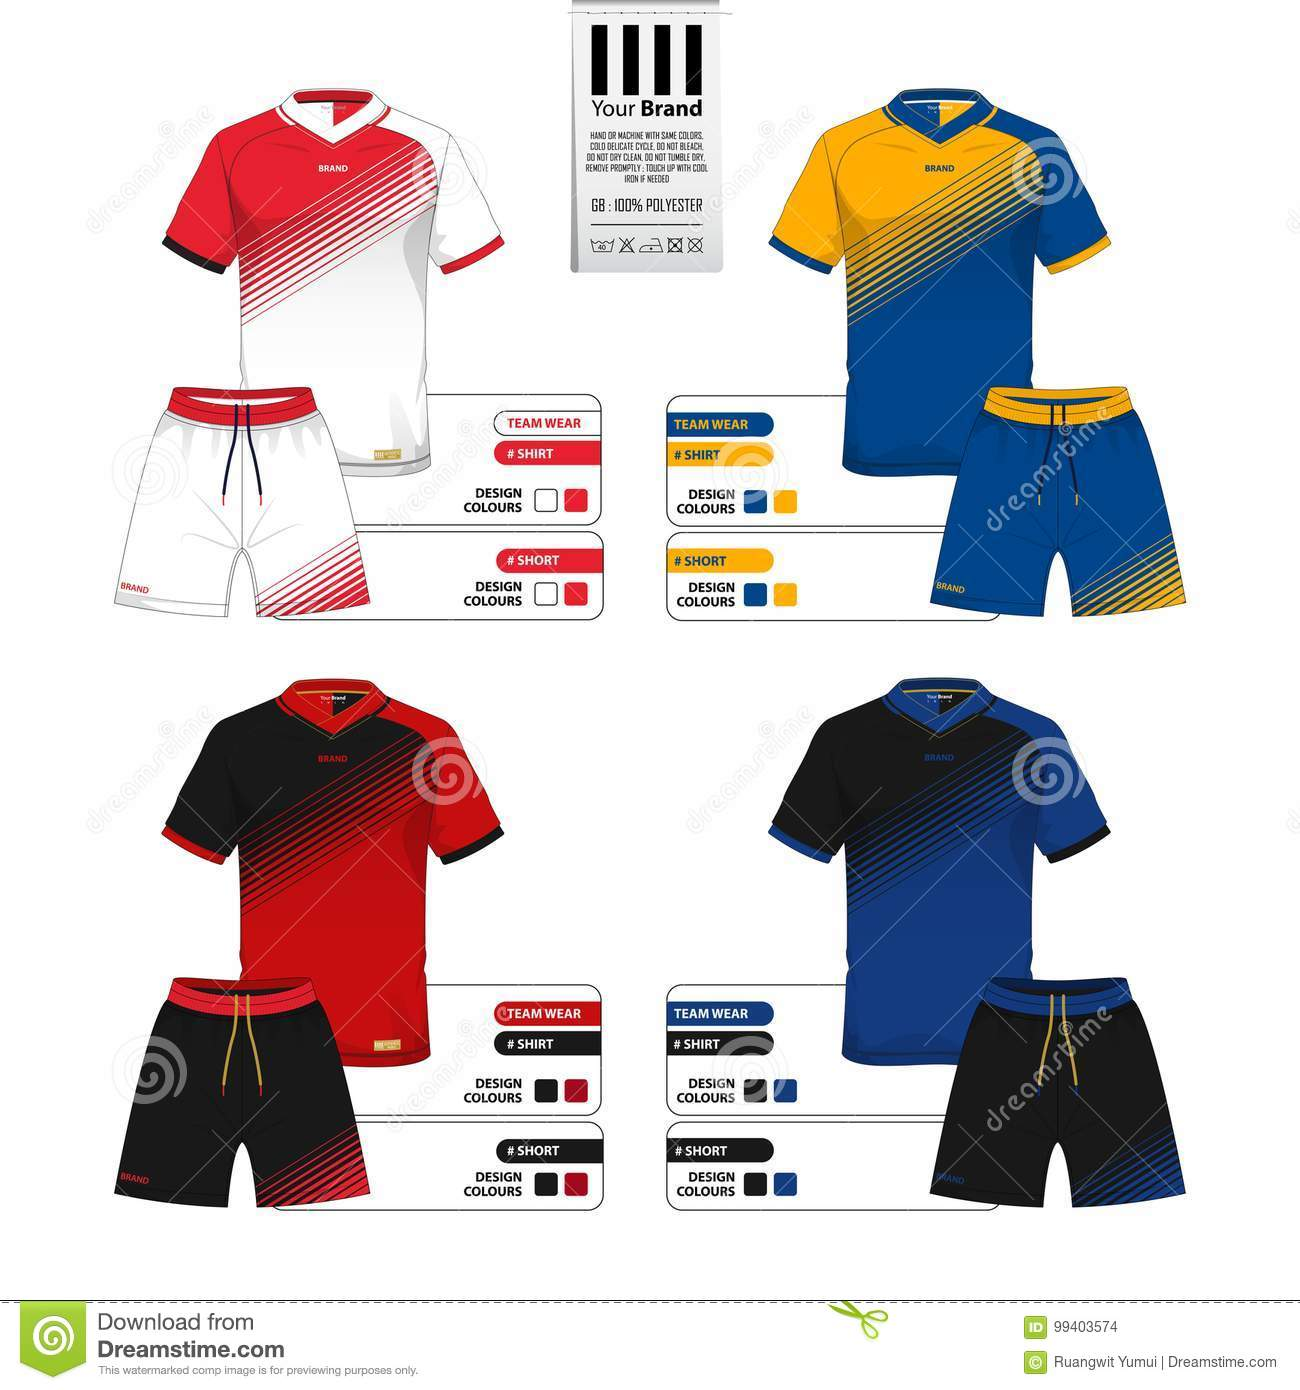 soccer jersey or football kit and short pant template for sportswear